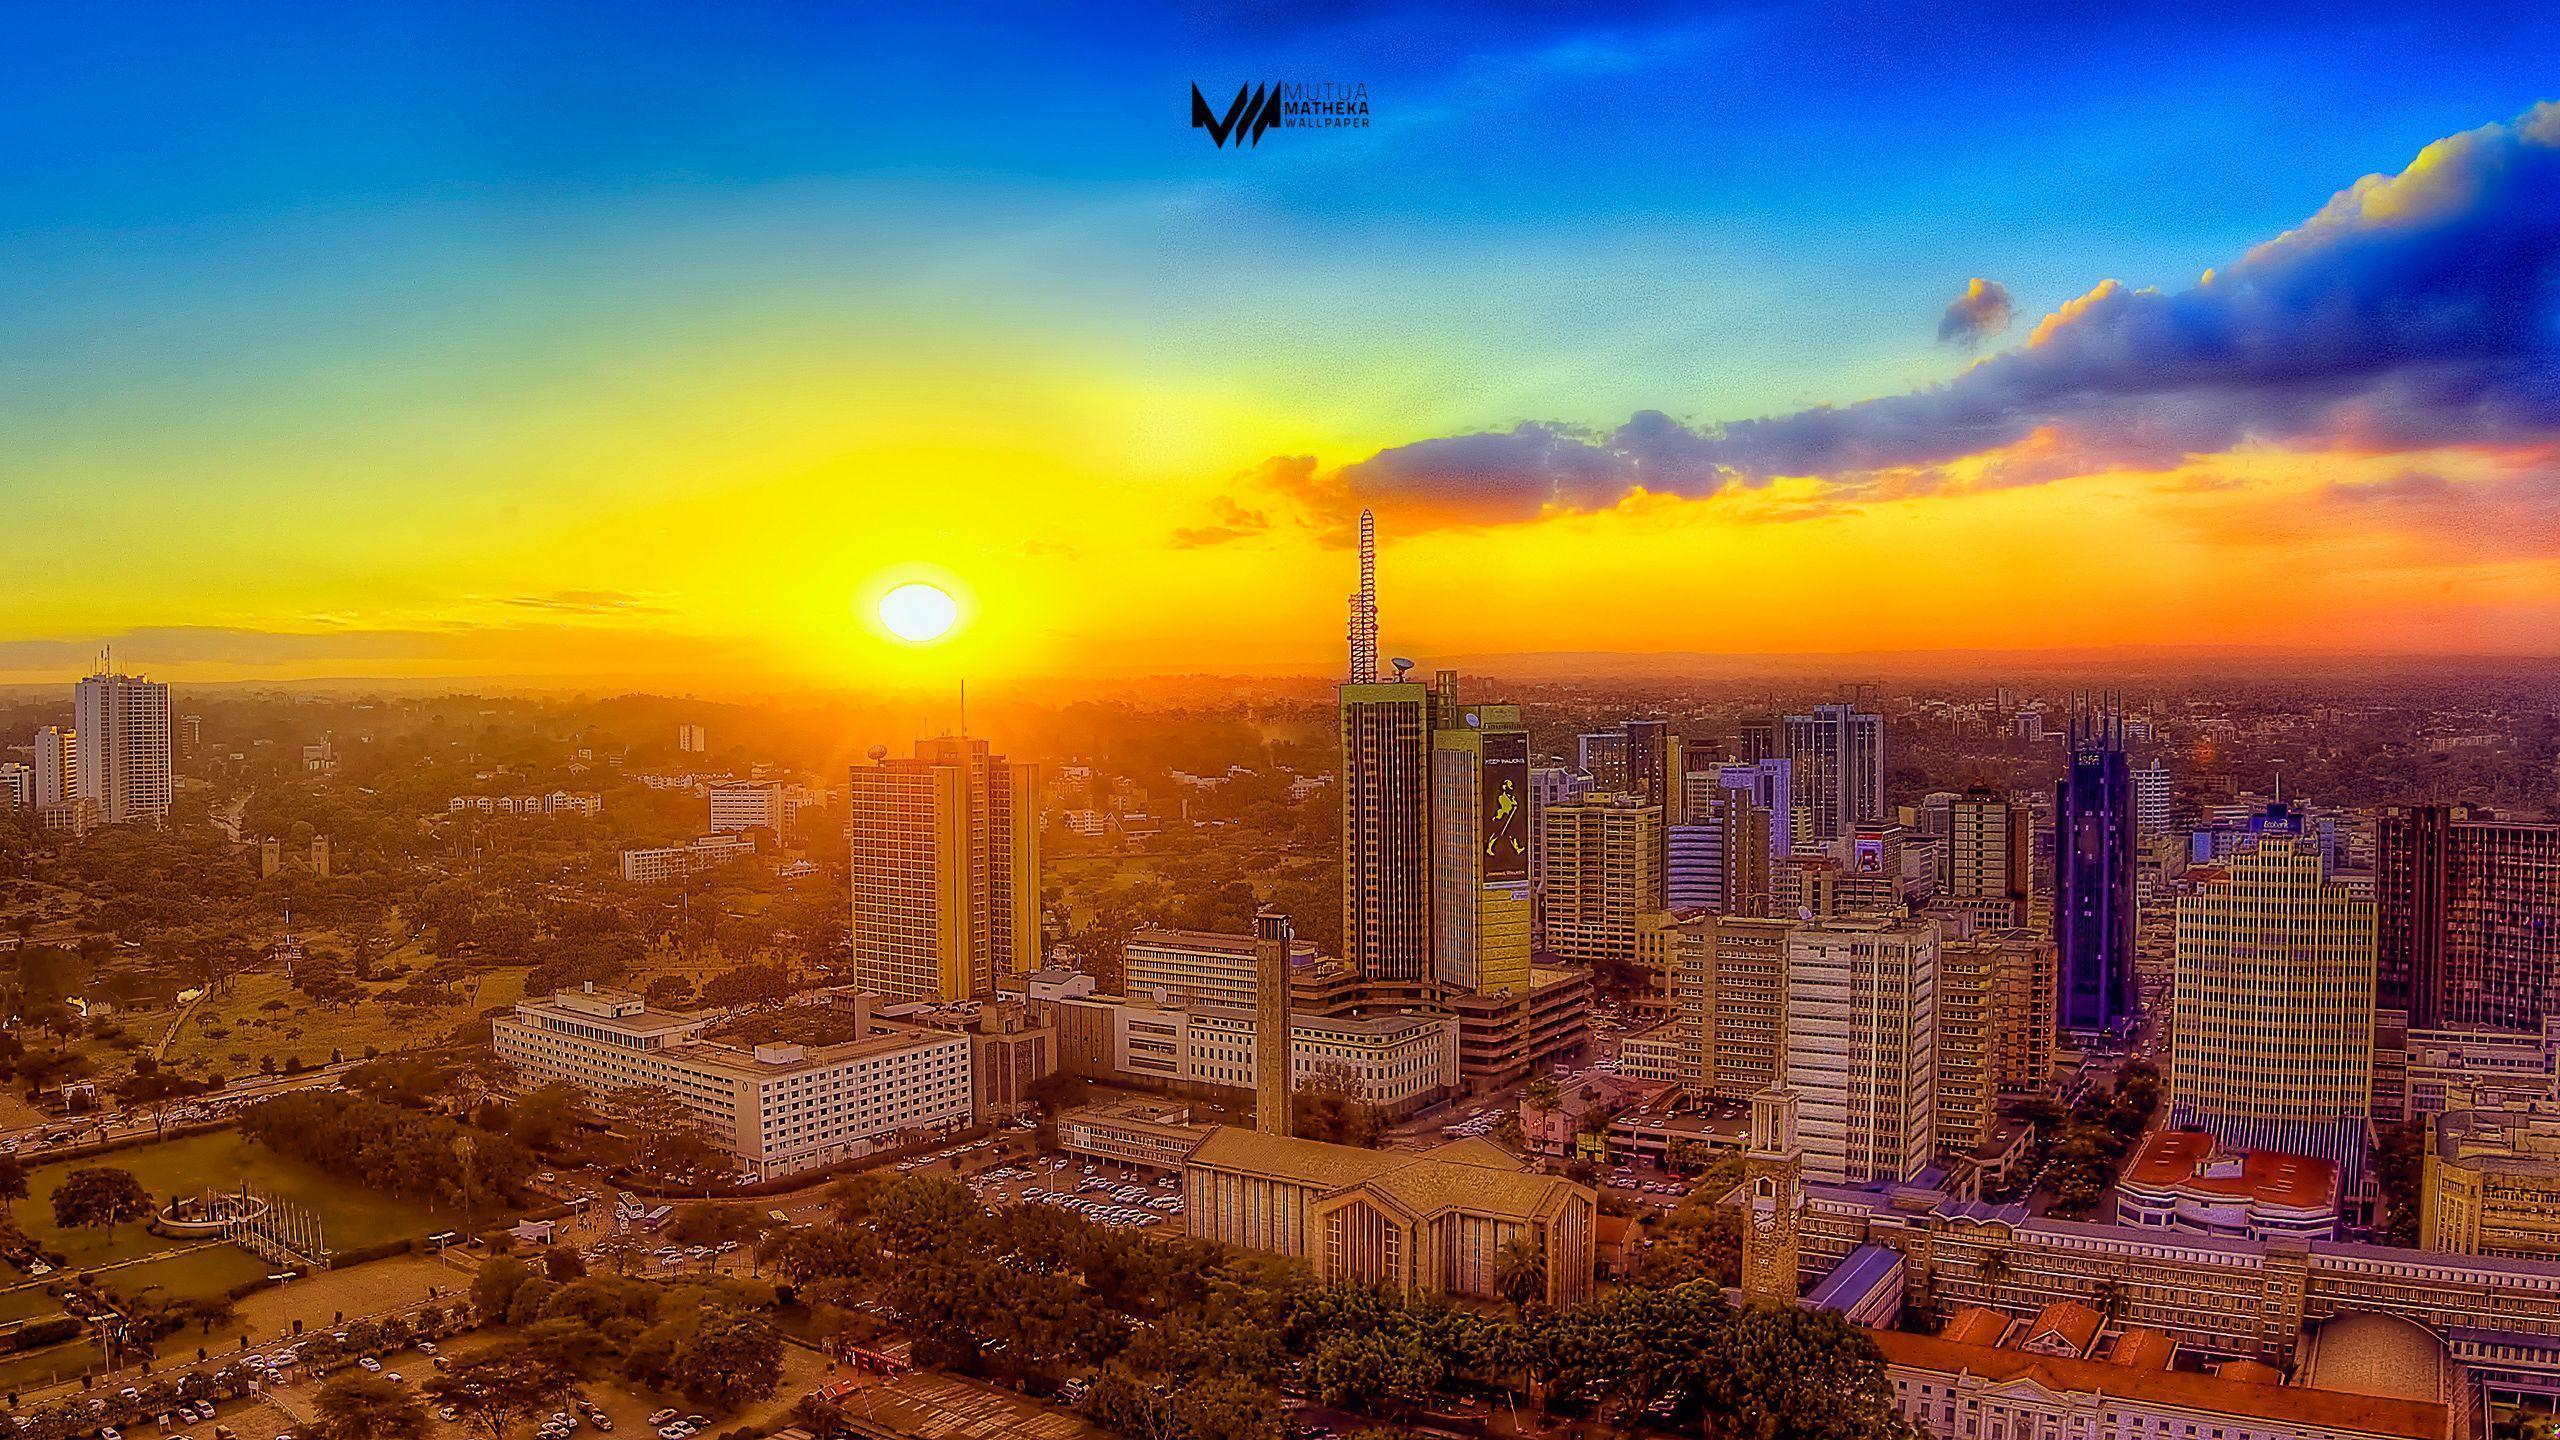 Wallpaper Monday [67] – Nairobi Sundowner |